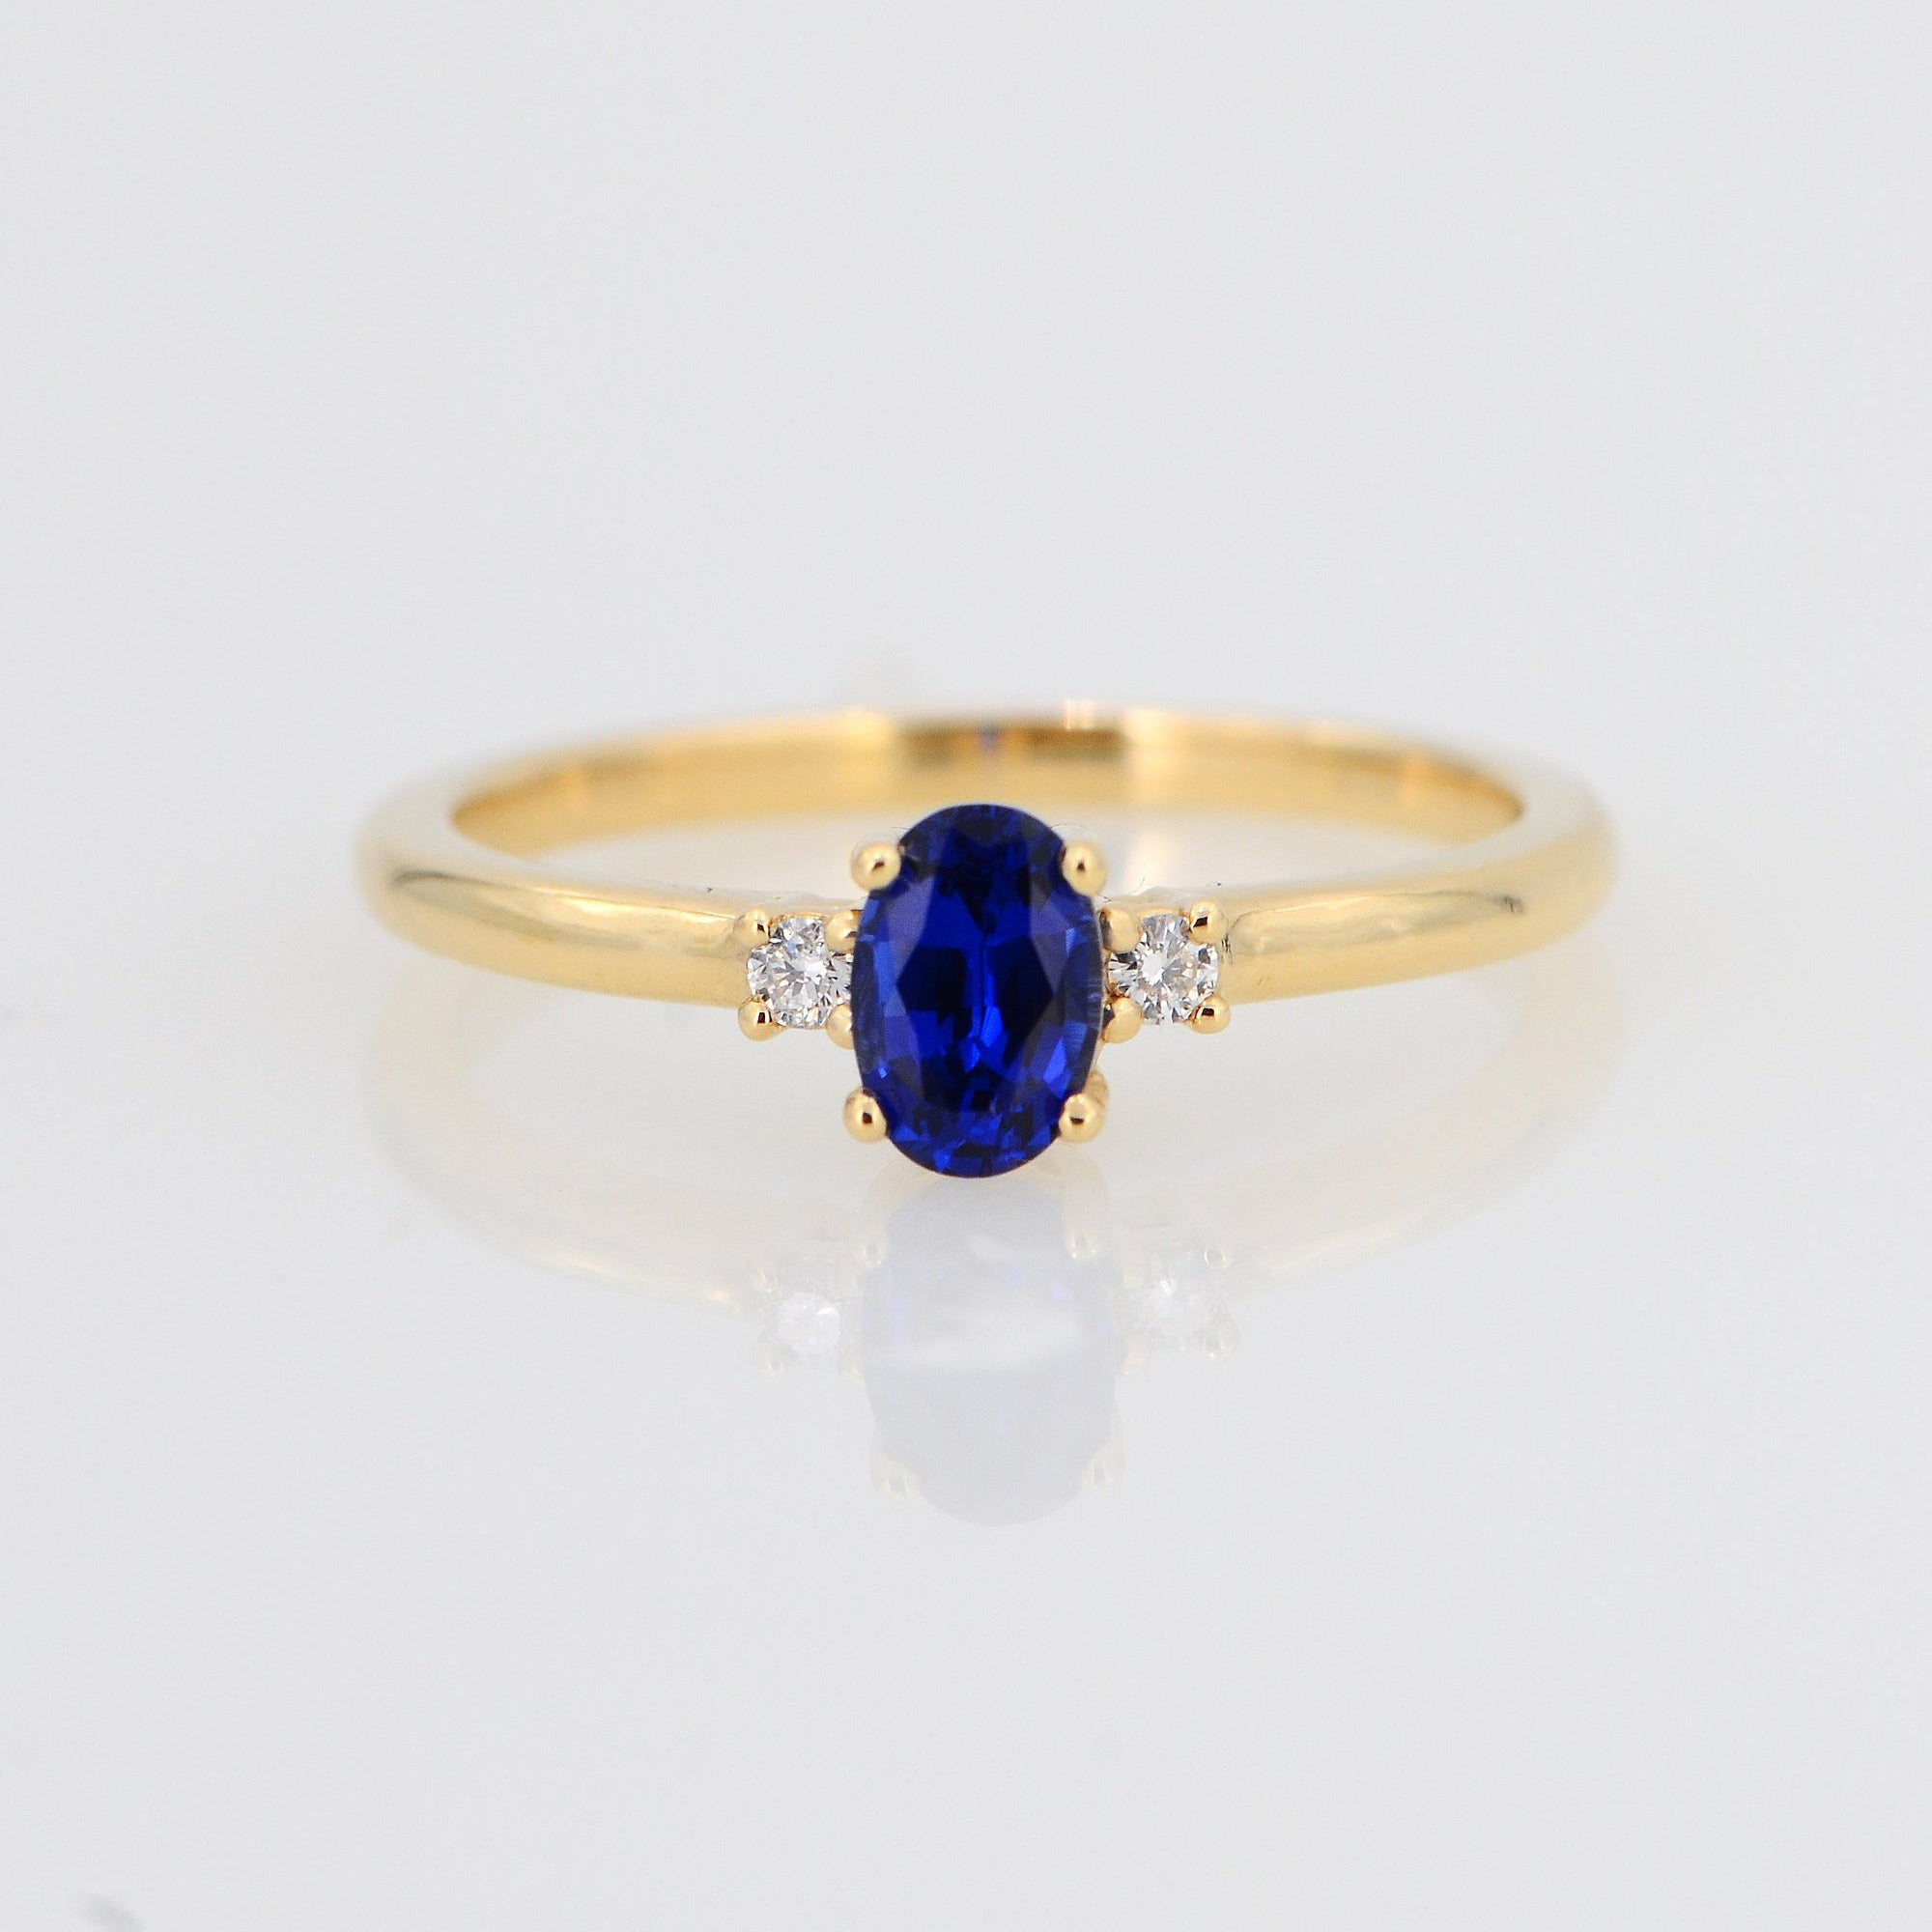 Blue Sapphire Ring, Diamond Ring